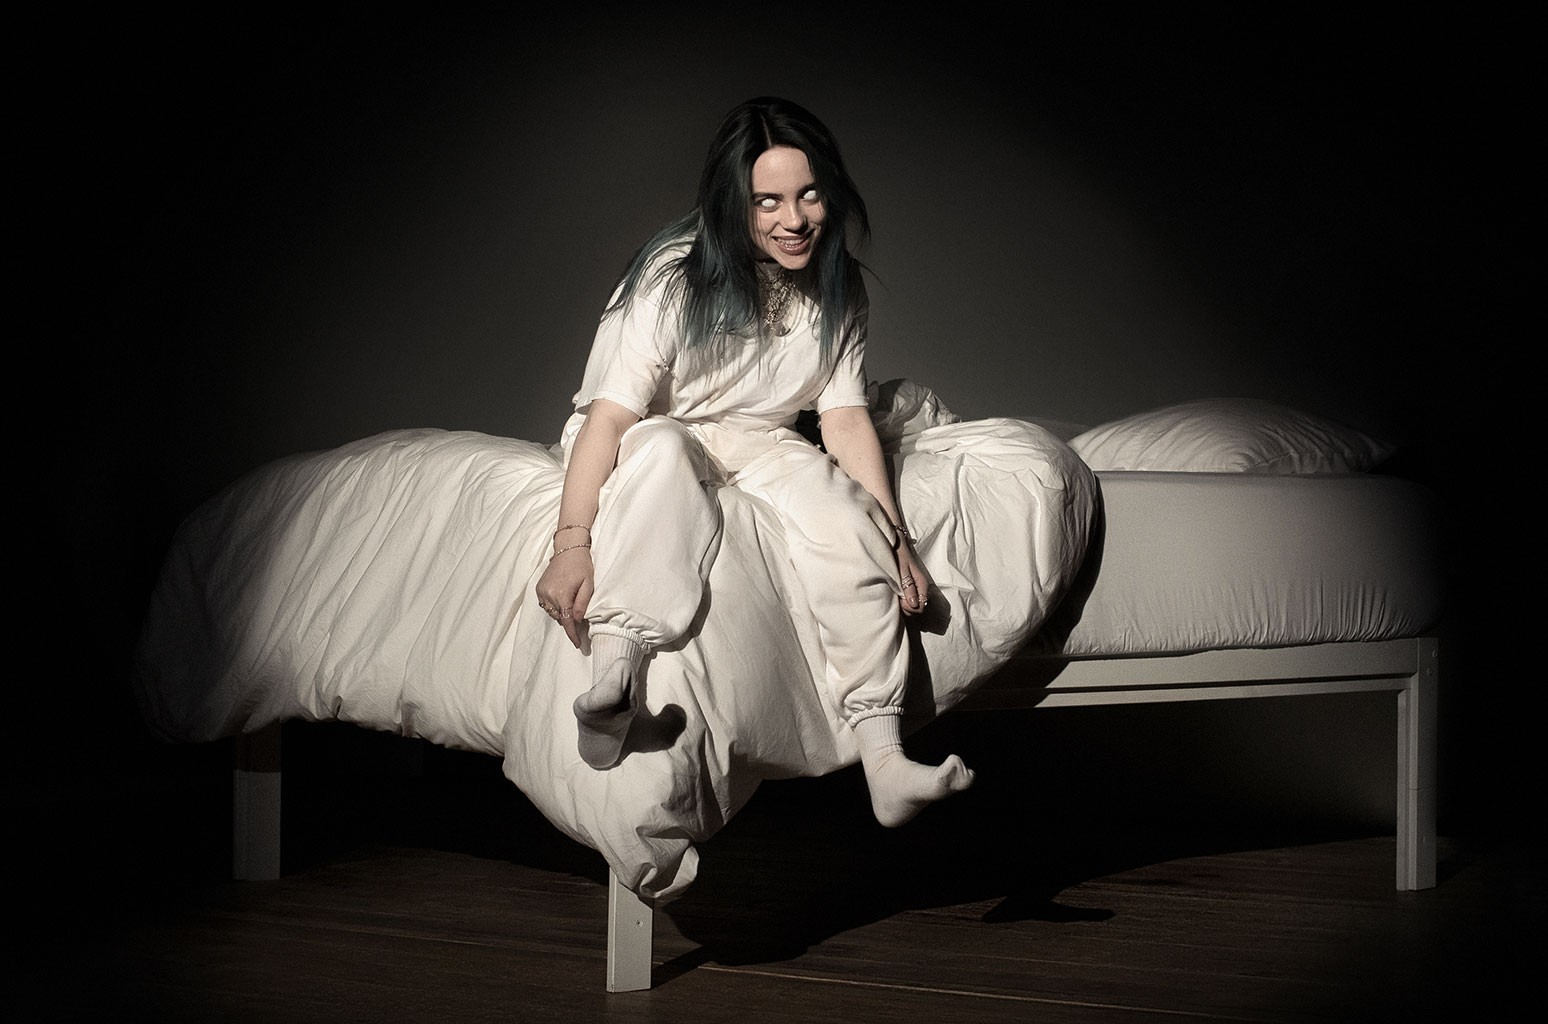 billie-eilish-when-we-all-fall-asleep-where-do-we-go-debuts-at-no-1-billboard-200-albums-chart